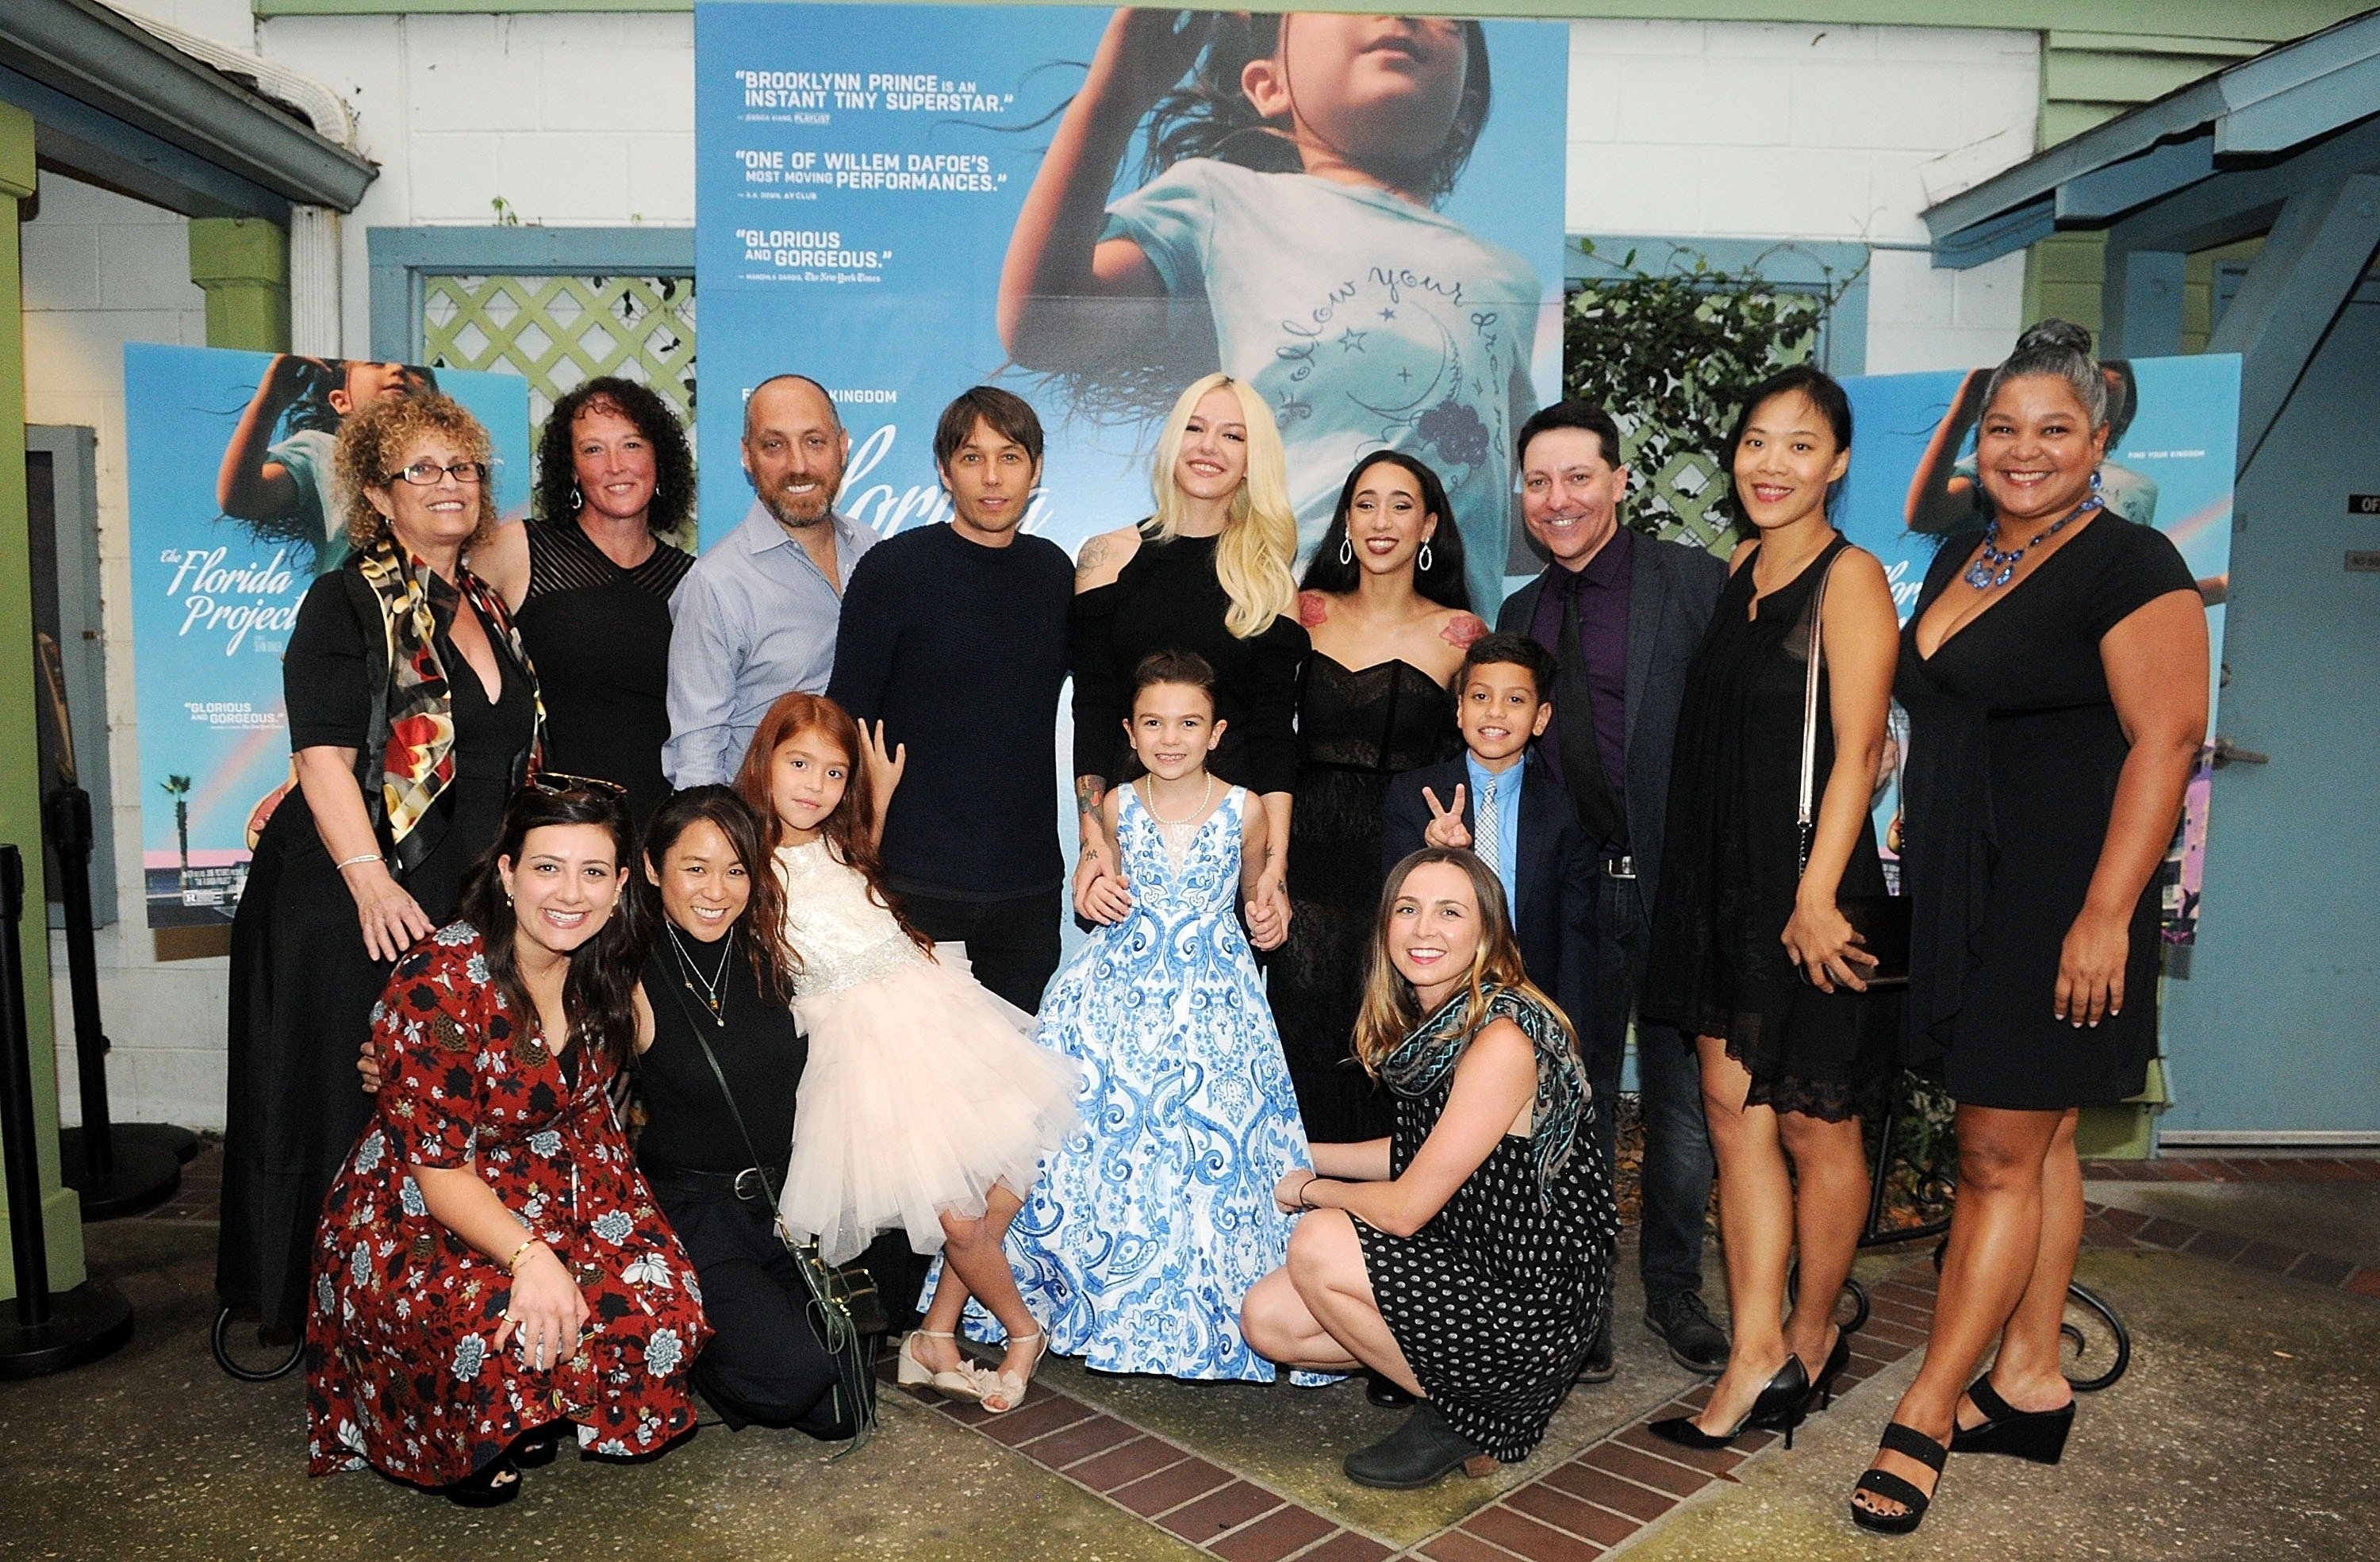 Cast and crew members of 'The Florida Project' pose during the Orlando premiere at The Enzian Theater on October 4, 2017 in Maitland, Florida.  (Getty Images for A24)